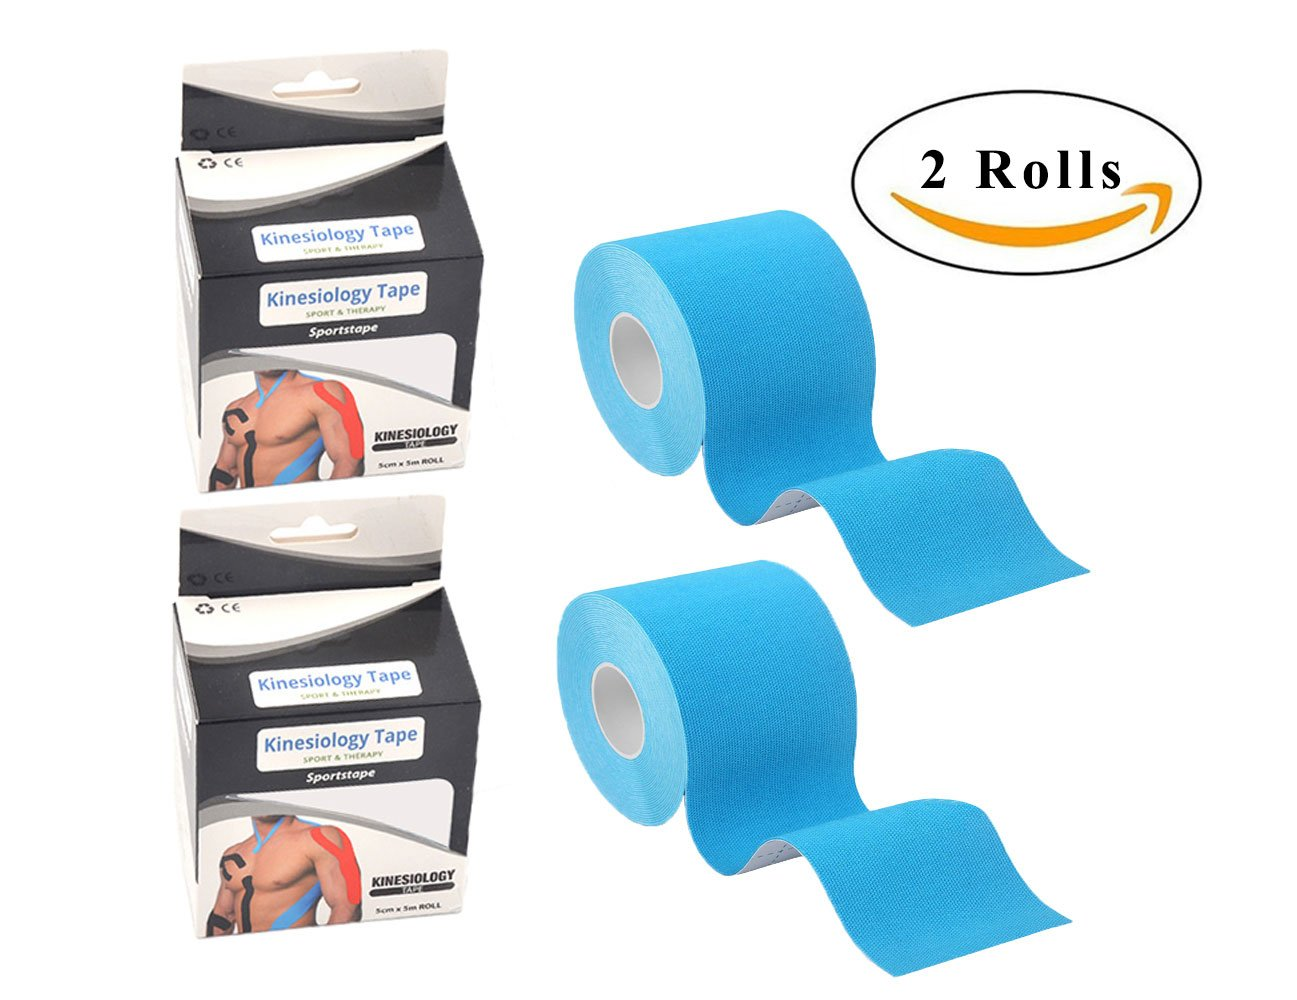 Kinesiology Tape for Plantar Fasciitis Knee Shoulder Elbow Waterproof Best Pain Relief Adhesive,Physio Therapeutic Aid Elastic Kinesiology Tape,2 Rolls (2'' x 16.5 feet Per Roll,Blue)